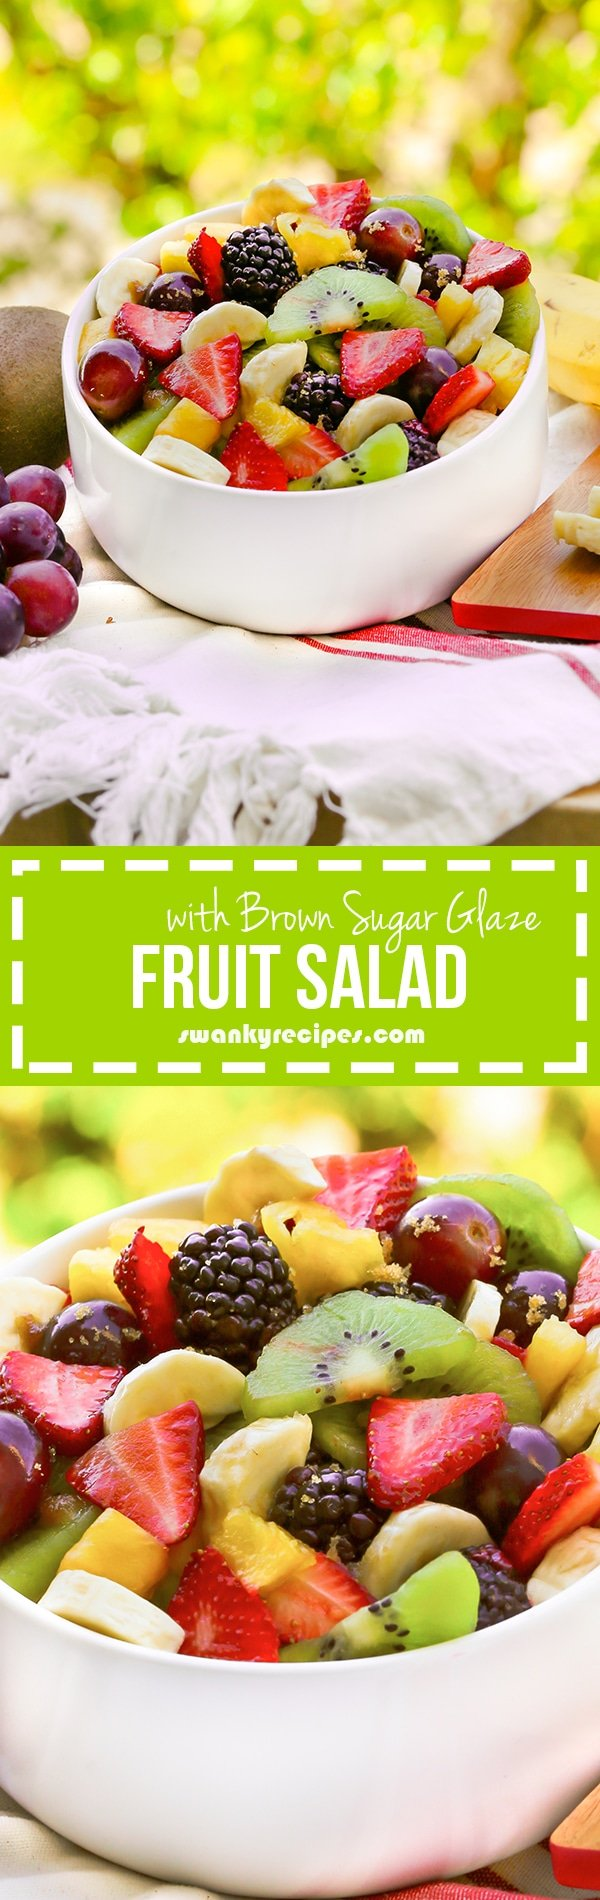 Fruit Salad with Brown Sugar Glaze